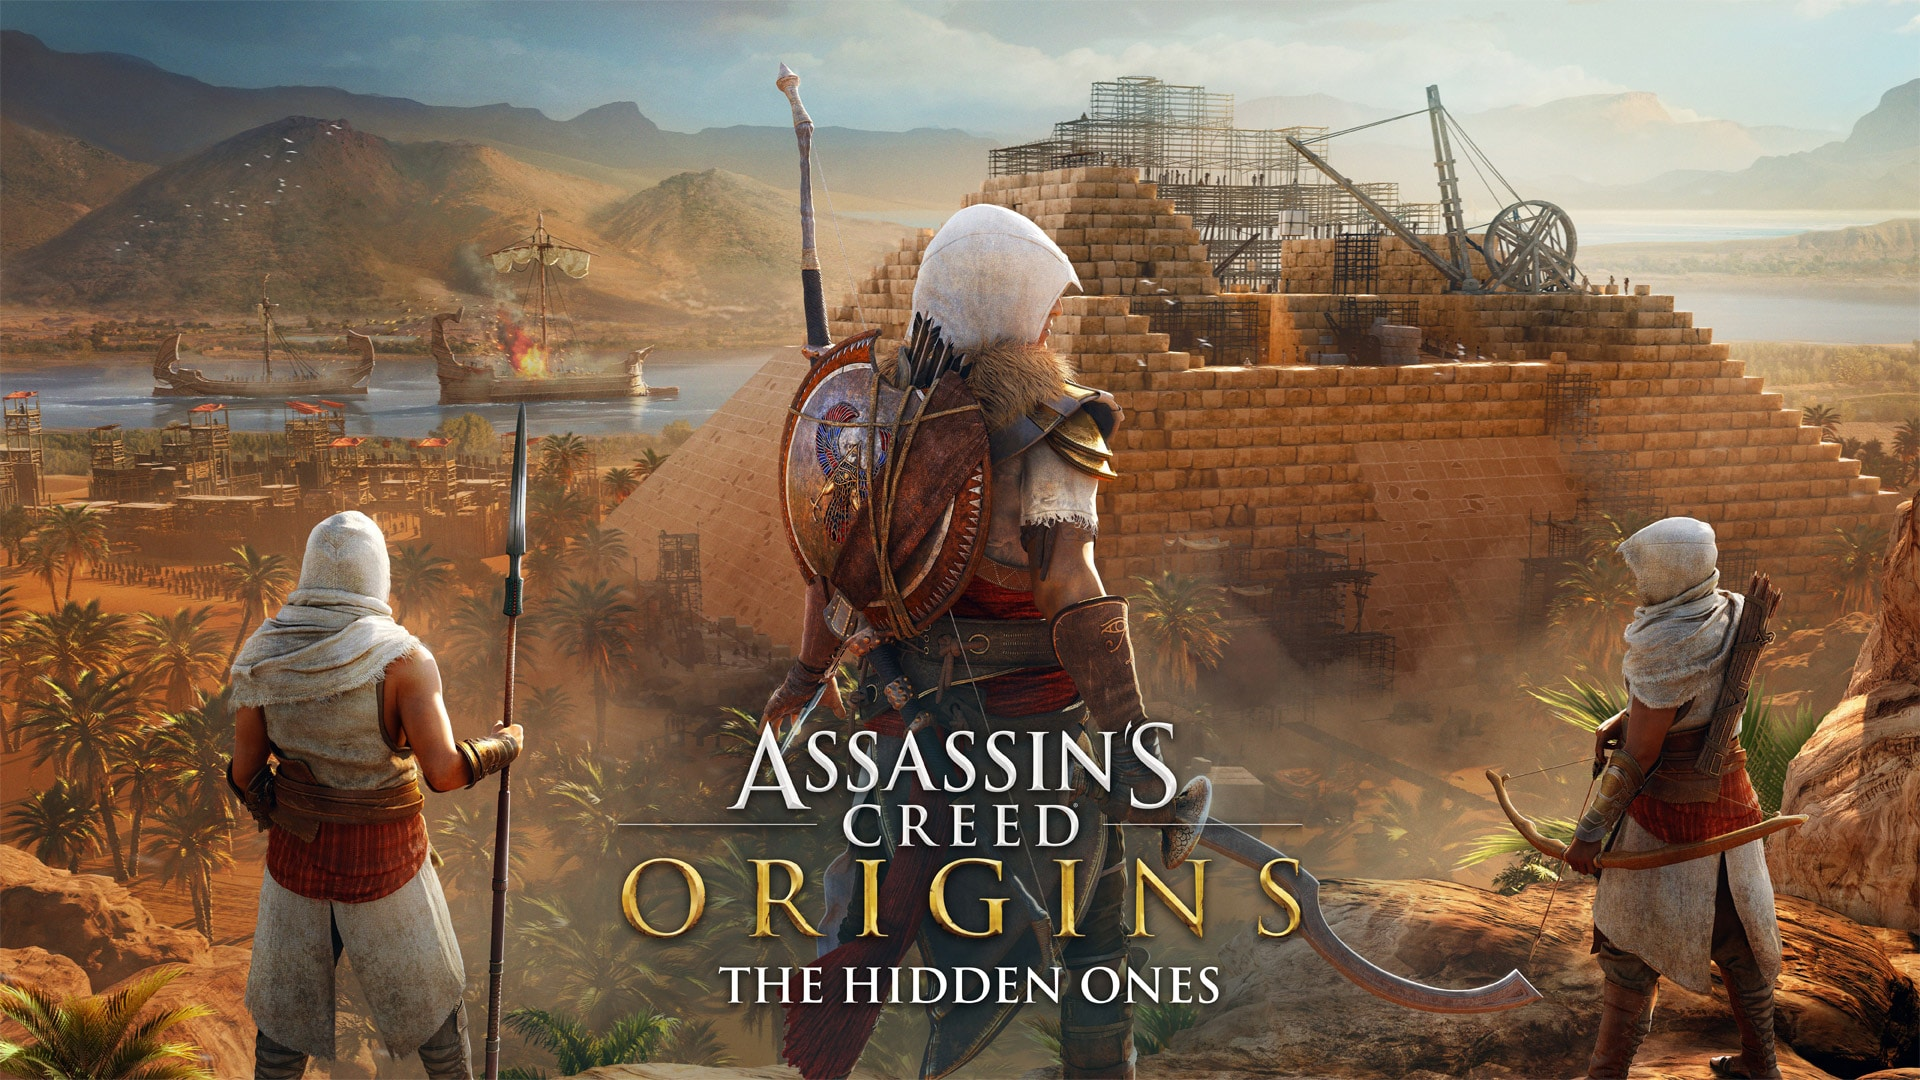 https://ubistatic19-a.akamaihd.net/resource/ja-jp/game/assassins-creed/ac-origins/ac_seaons_pass_header_303430.jpg